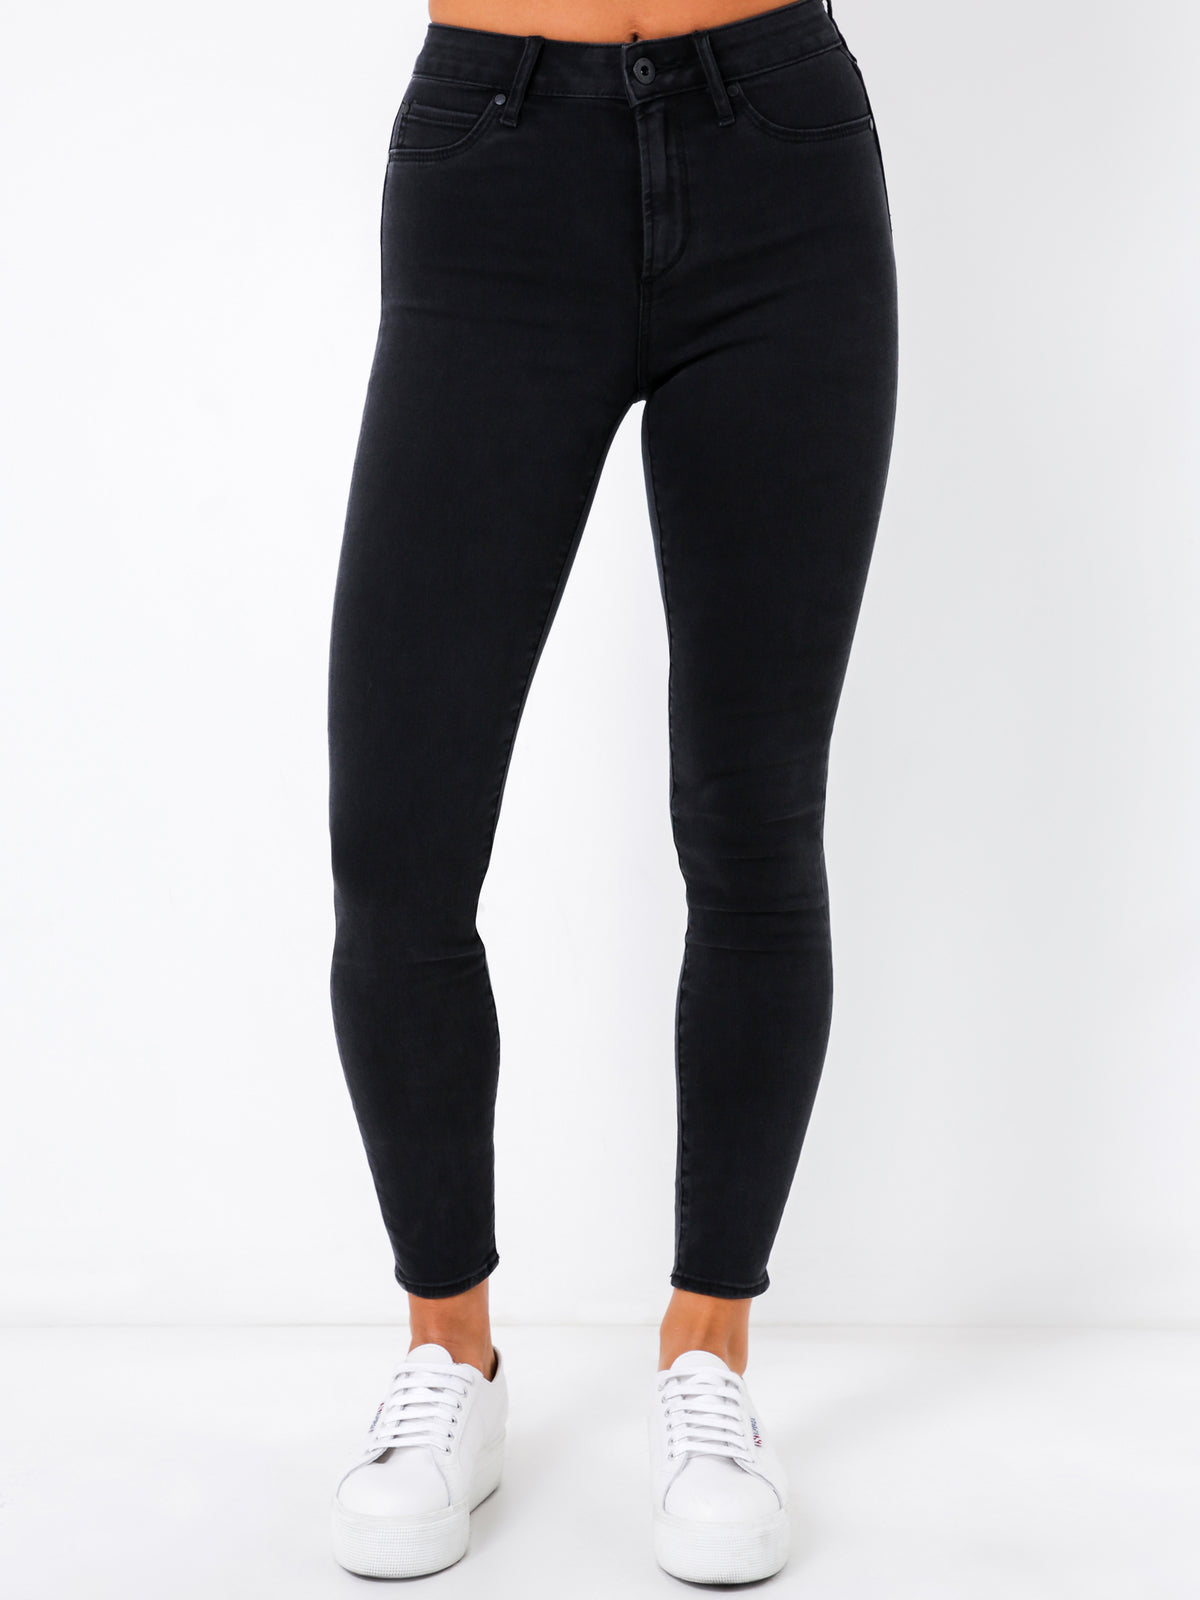 High Rise Cisco Super Skinny Jeans in Black Fade Denim